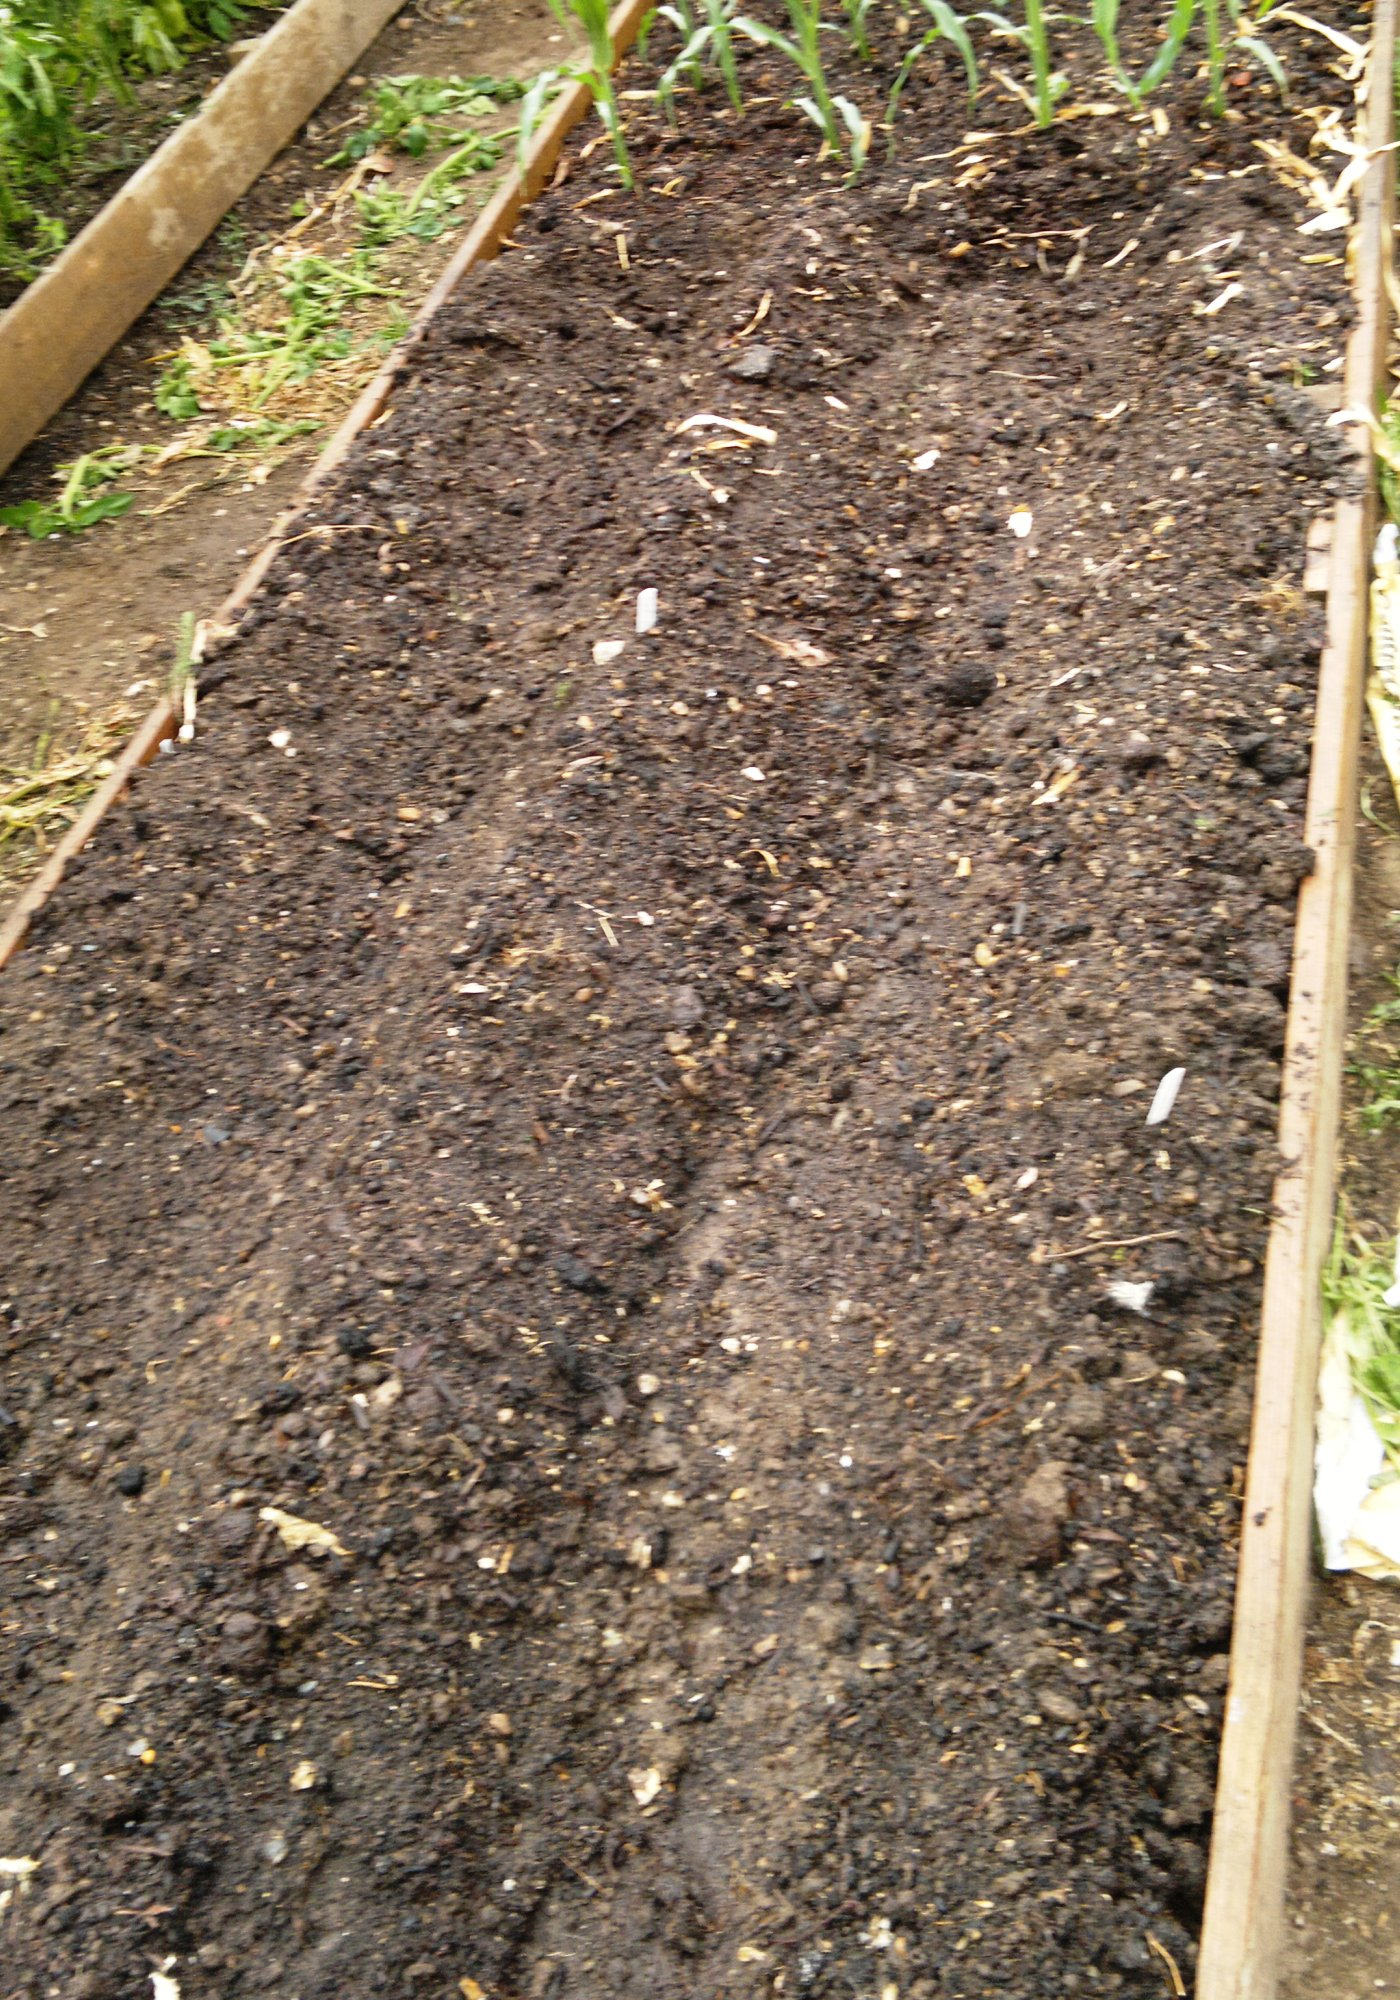 Potatoes planted in polytunnel bed